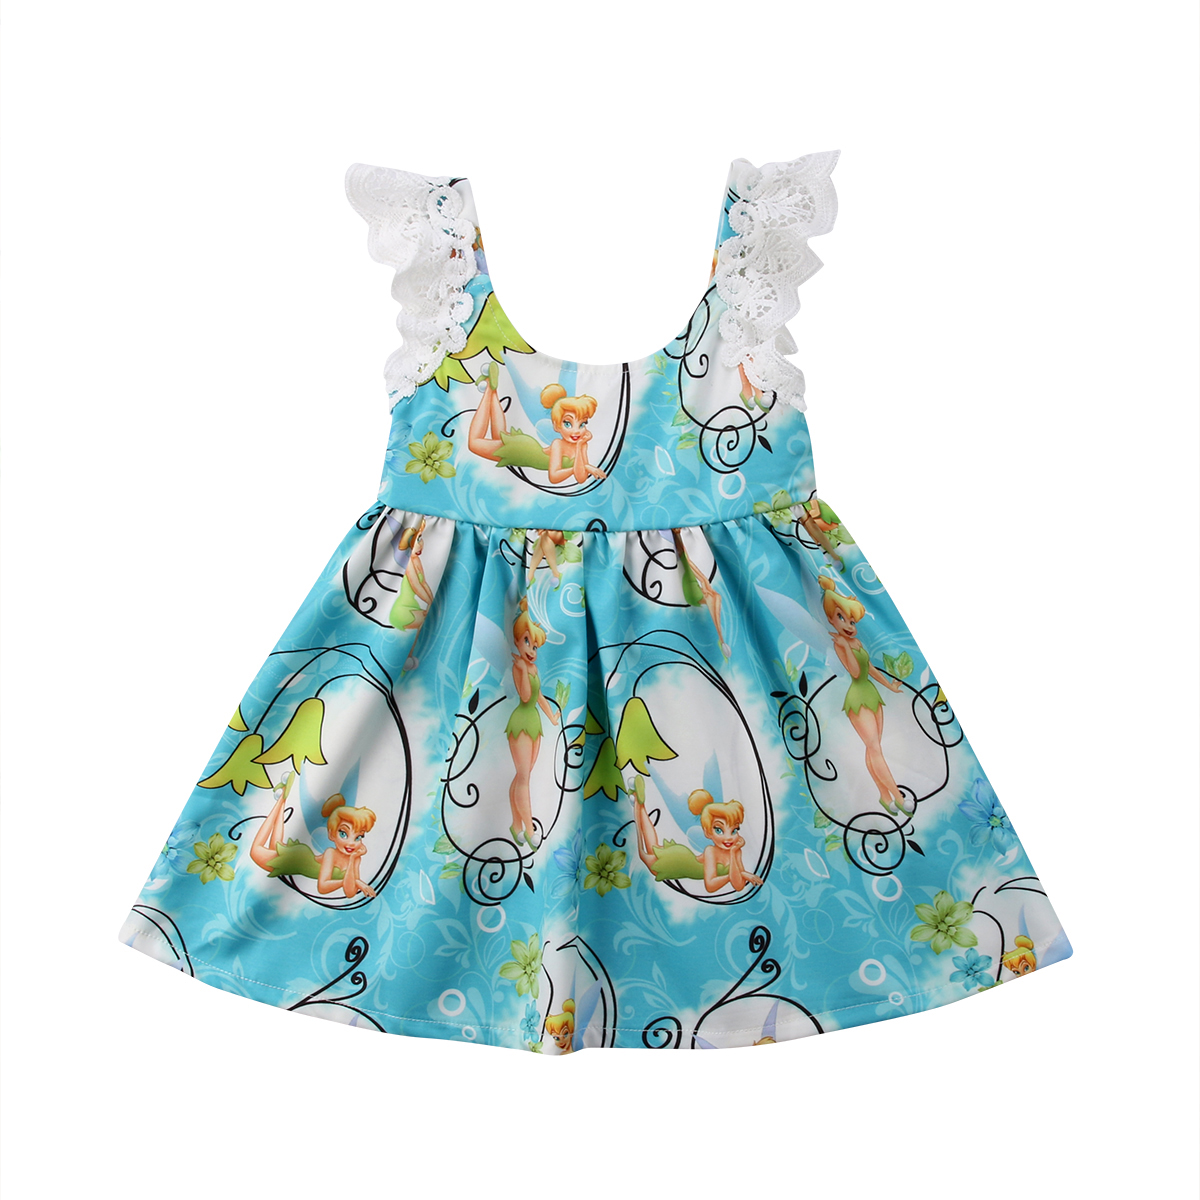 Cartoon Dressing Gown: Newborn Kids Baby Girls Lace Cartoon Party Pageant Prom